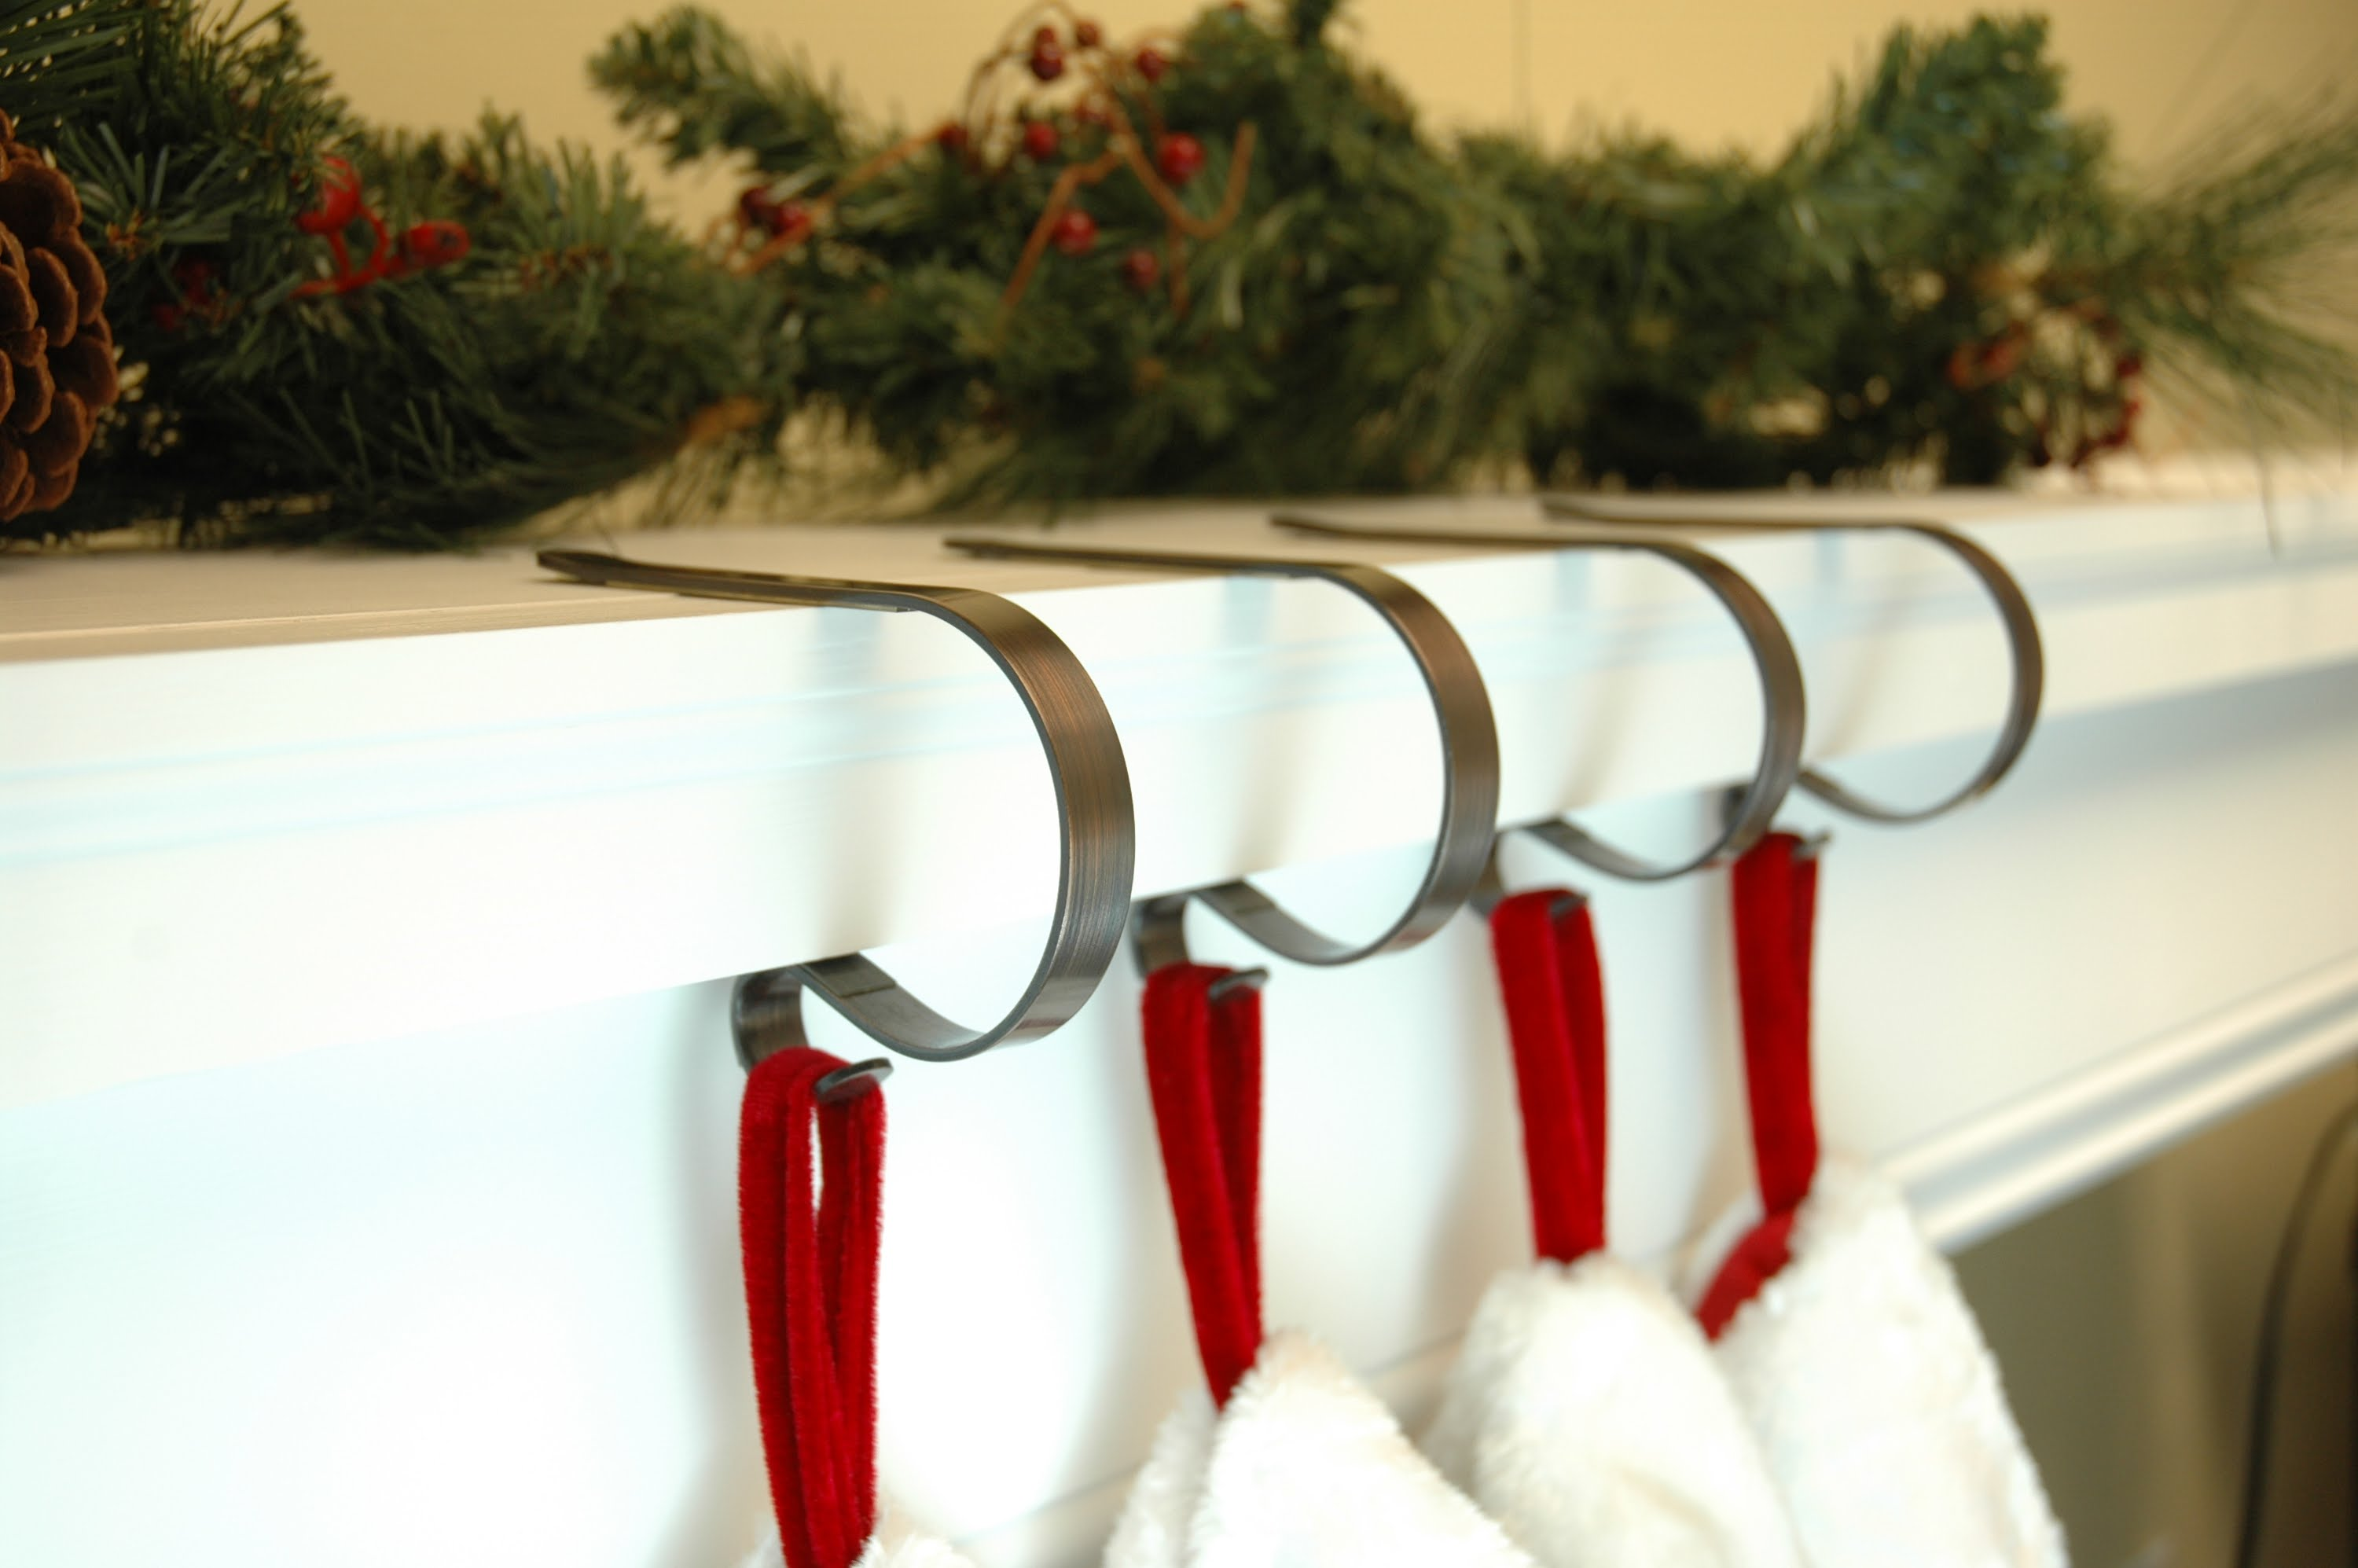 Mesmerizing stocking holder for interior decor ideas with christmas stocking holders